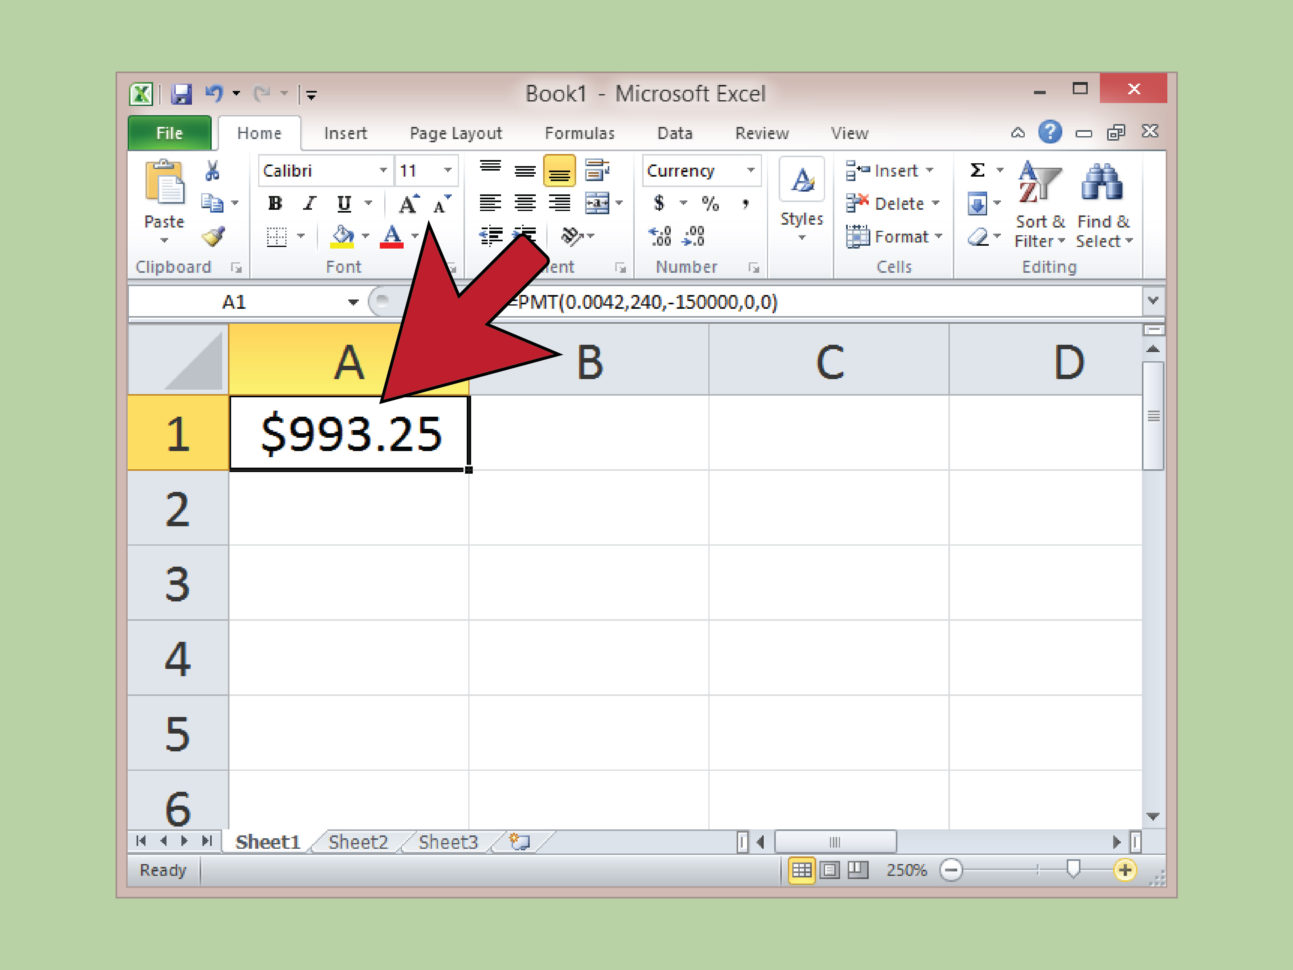 Microsoft Excel Spreadsheet Instructions In Microsoft Excel Spreadsheet Instructions Unique Learning Excel